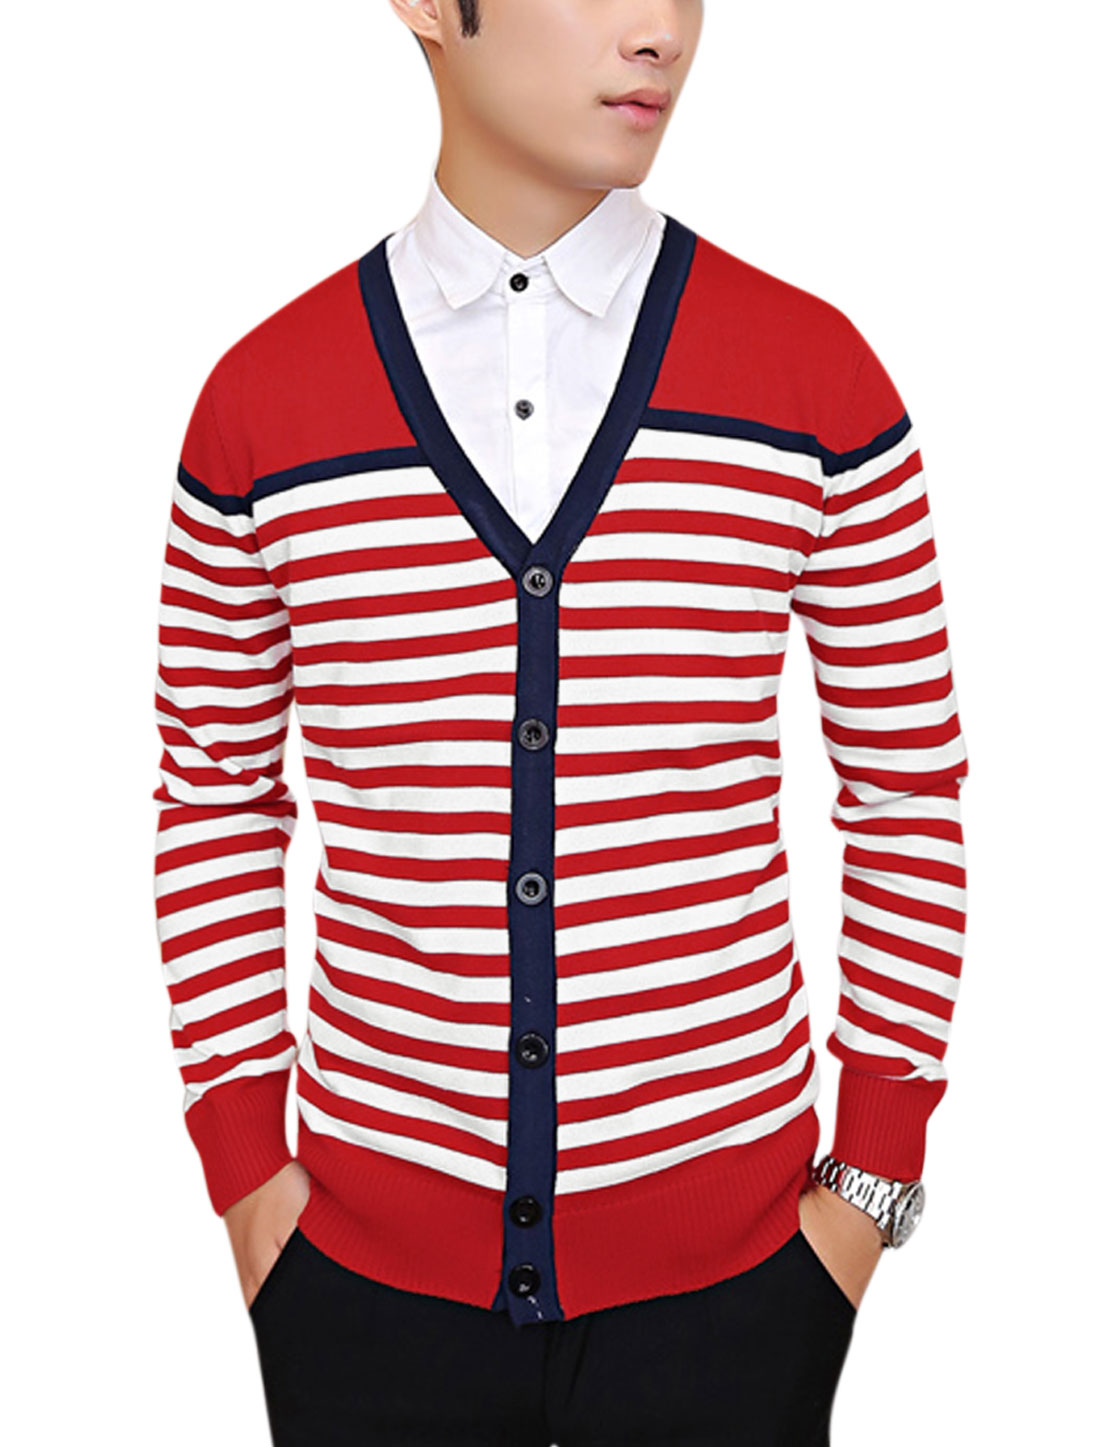 Men Contrast Color Stripes Single Breasted Casual Cardigan Red S